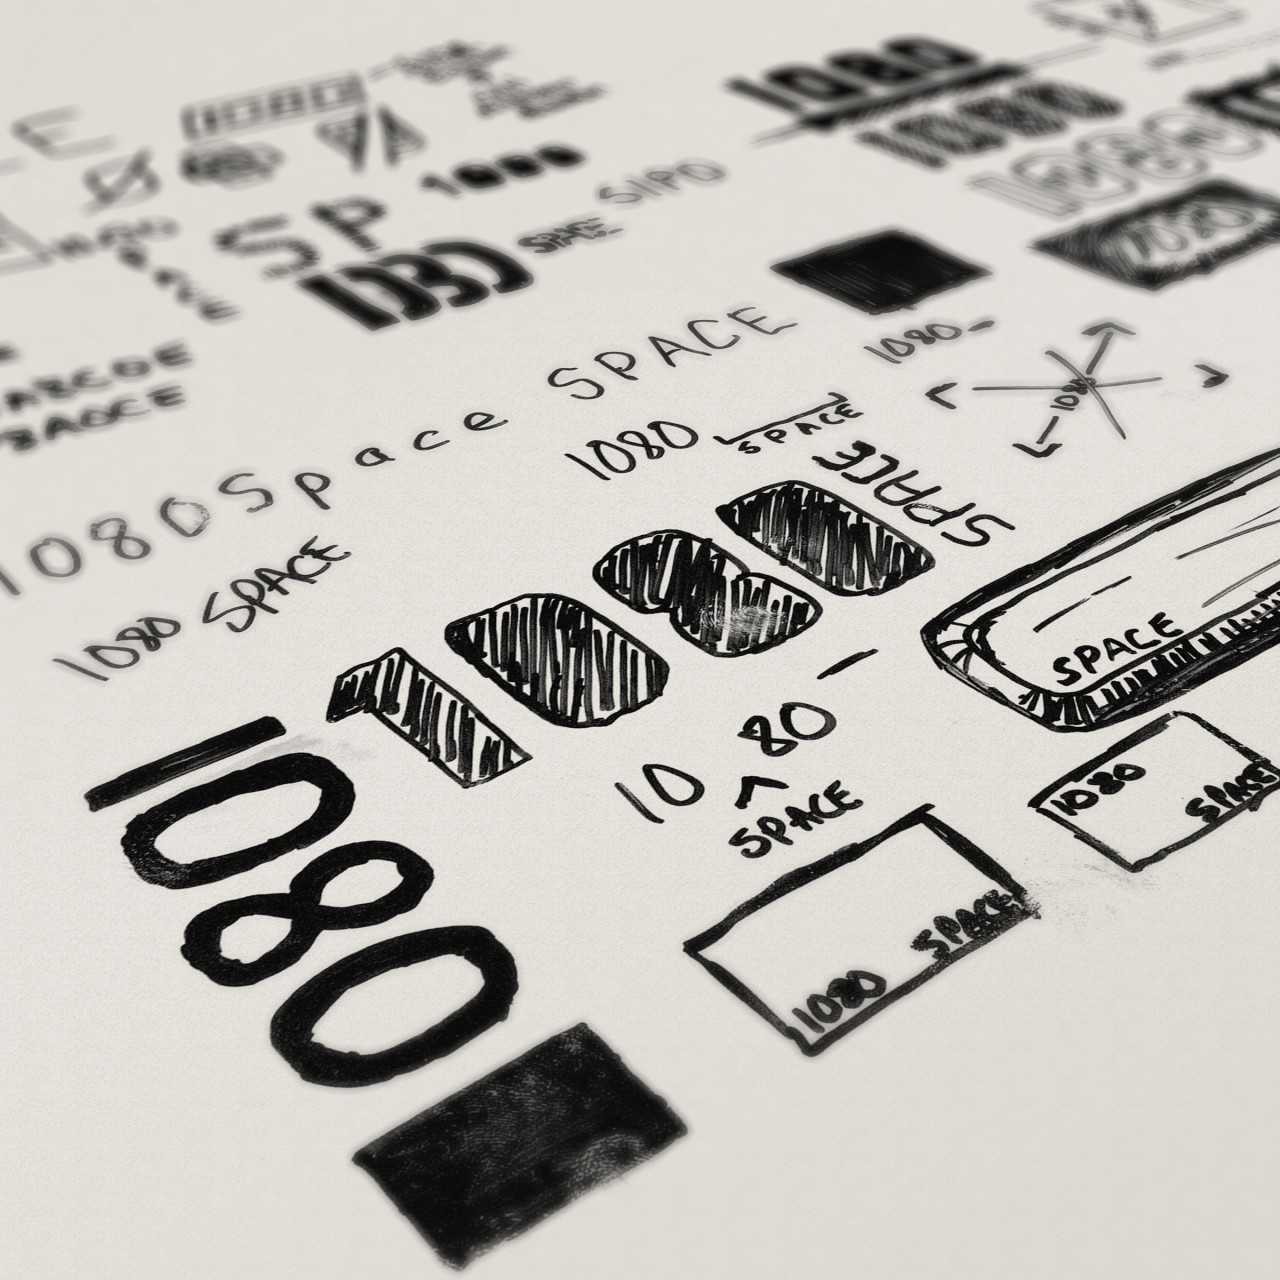 Image of 1080 Space logo process sketches